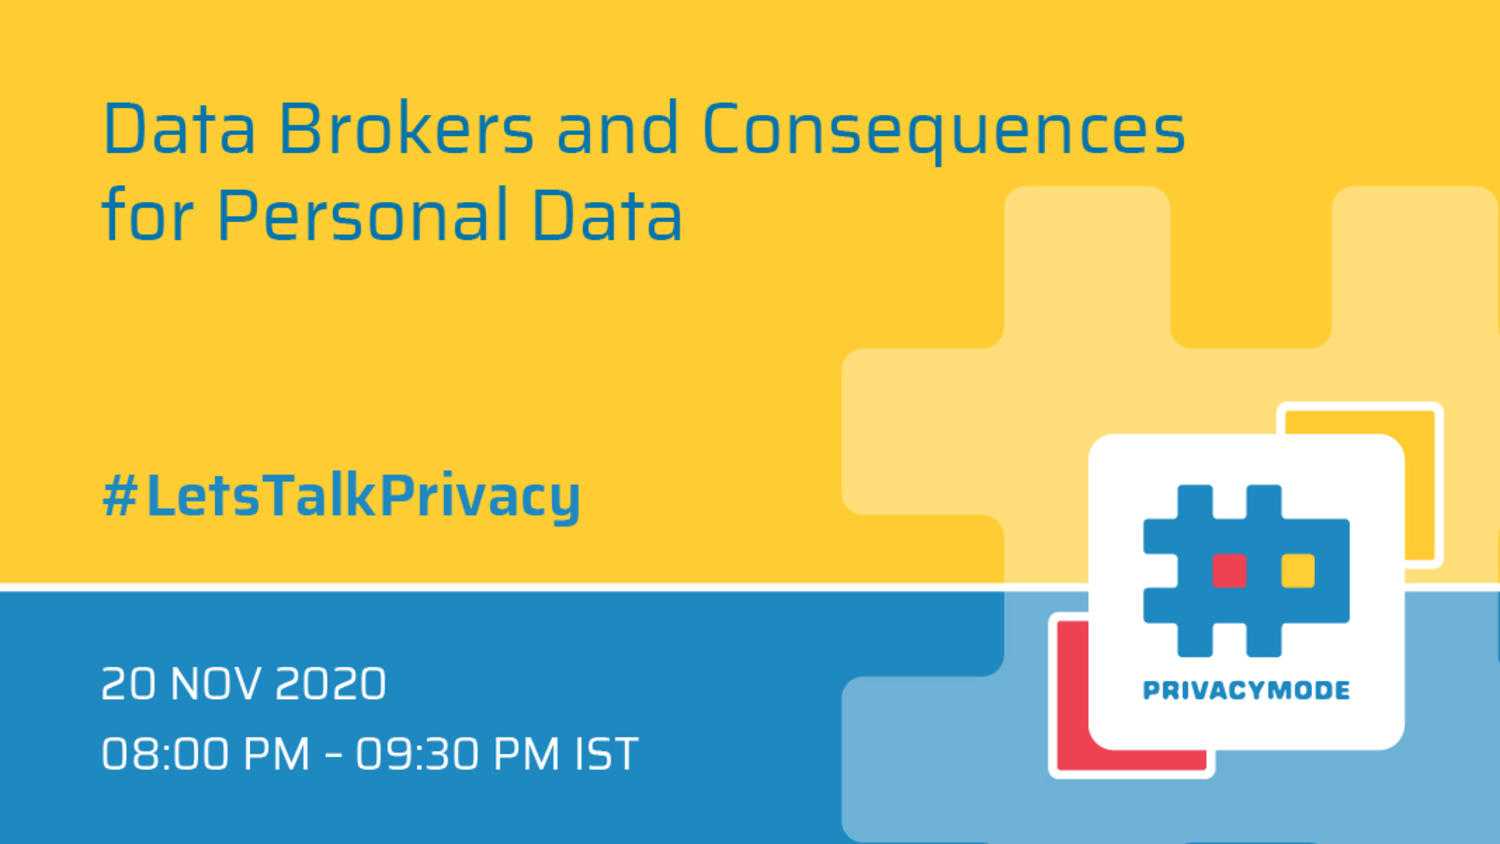 Data Brokers and Consequences for Personal Data